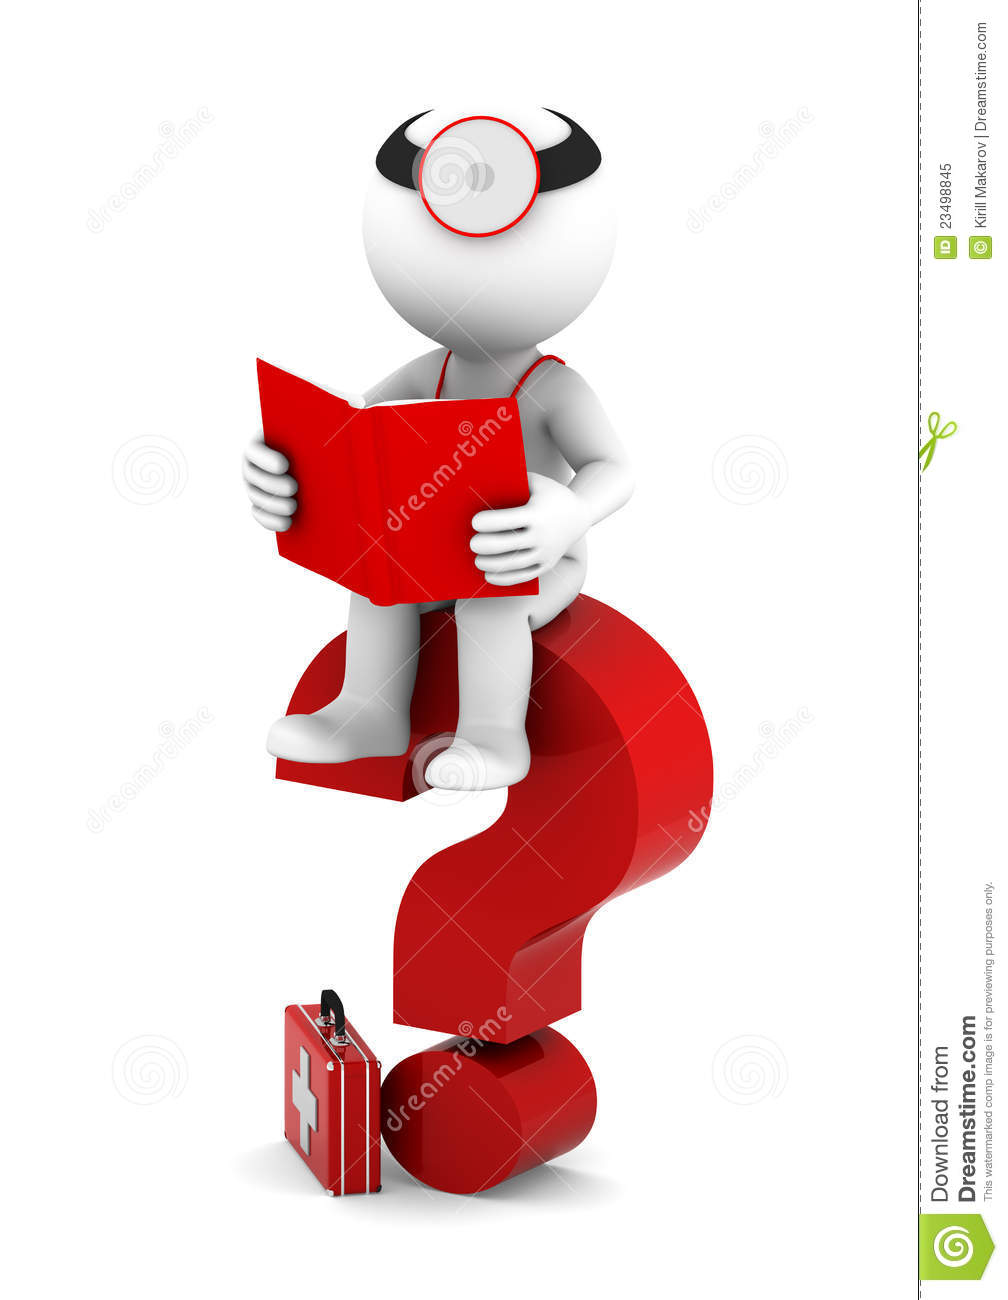 Medic With Book Sittting On Red Question Mark Stock